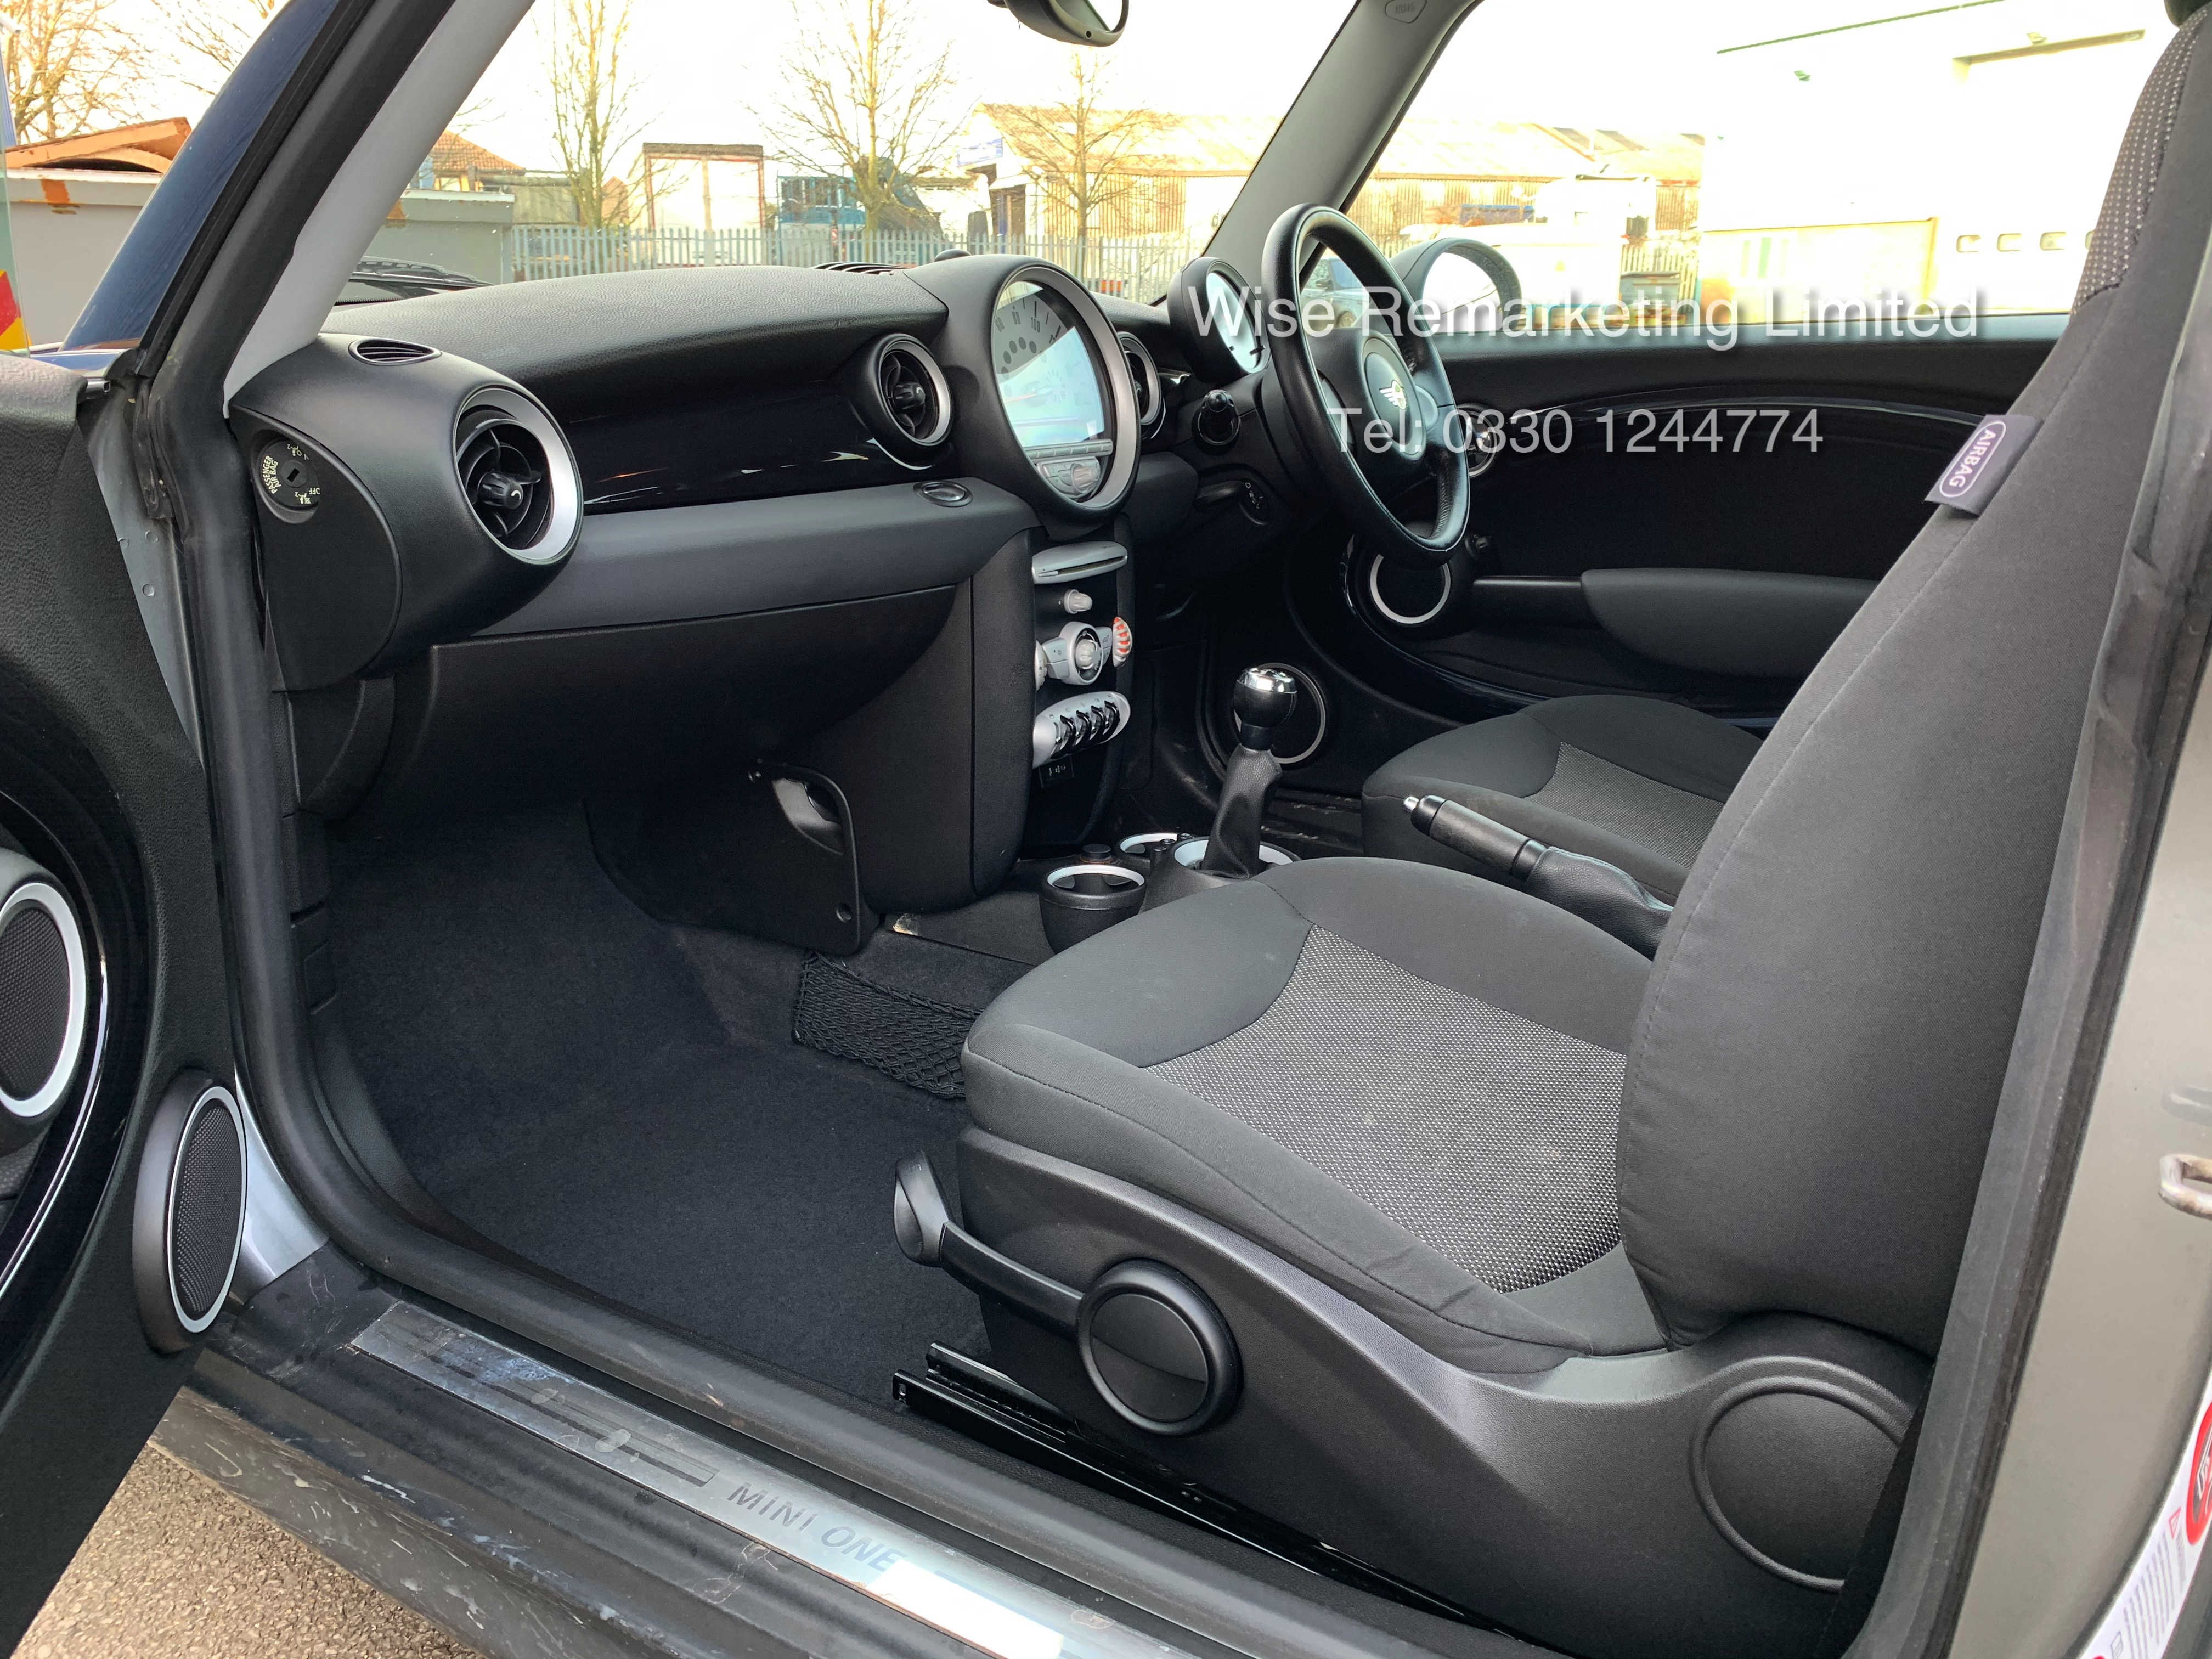 (RESERVE MET) Mini One Graphite 1.4 Petrol - 2010 Model - Service History - 6 Speed - Air Con - - Image 10 of 19